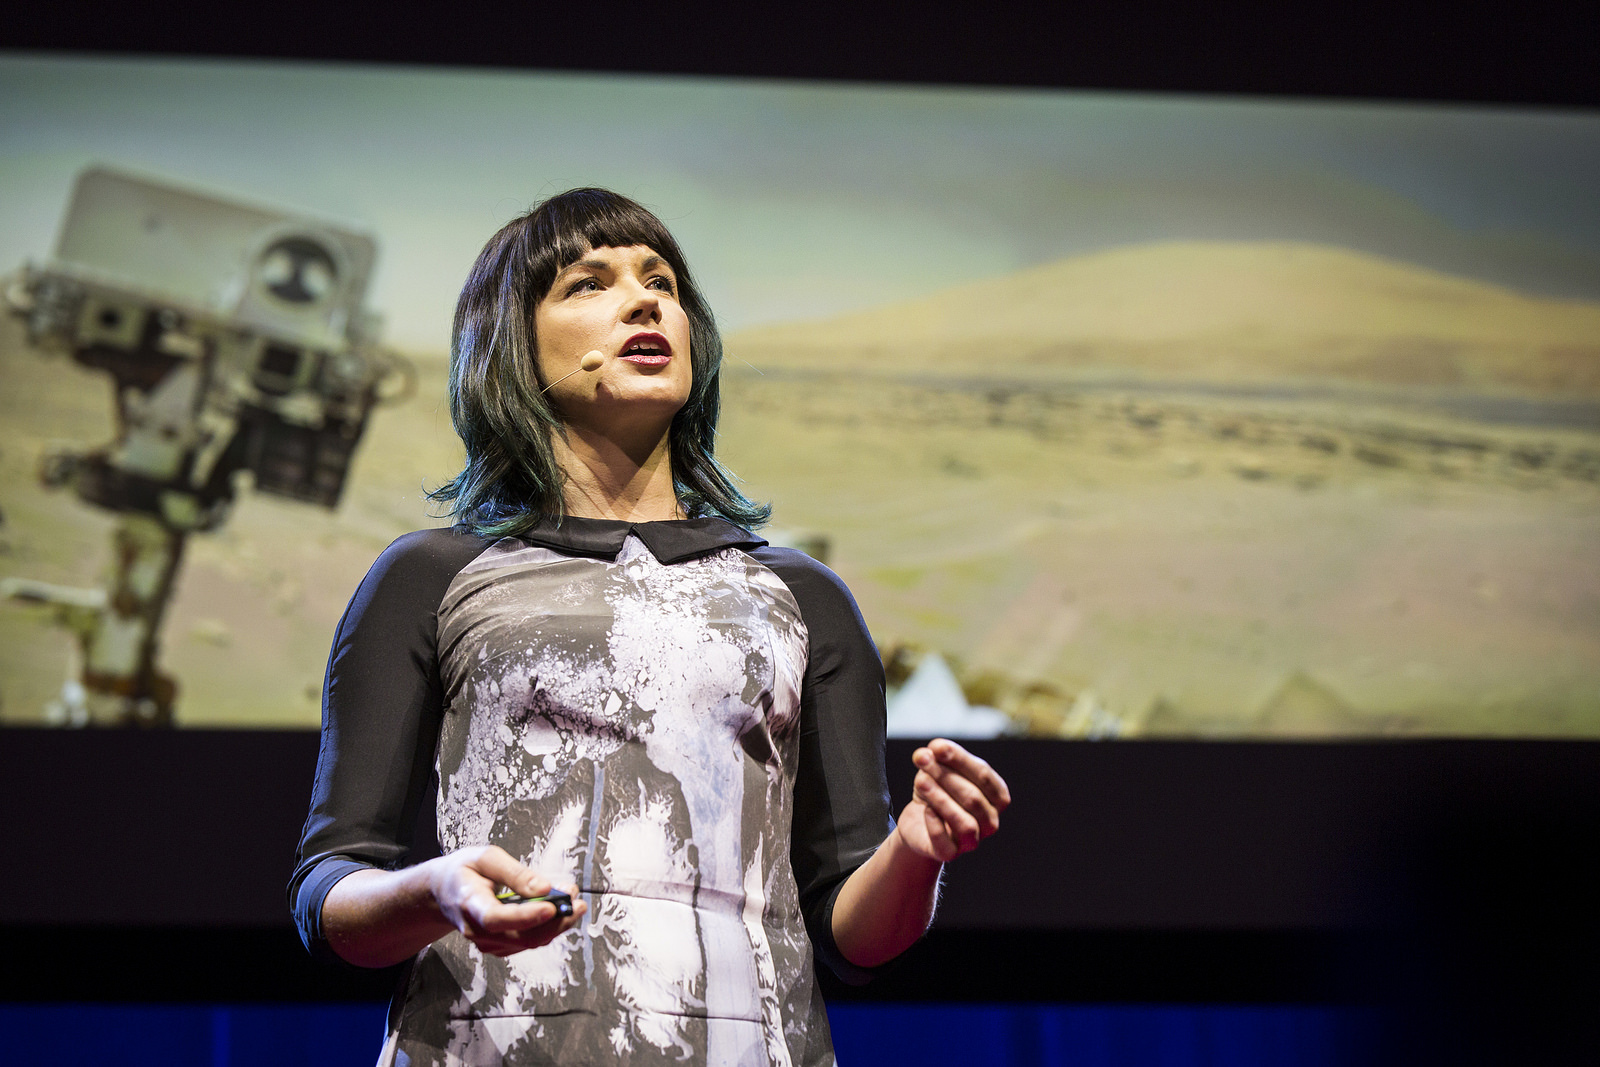 Stellar astronomer Lucianne Walkowicz speaks about how searching for habitable planets beyond Earth can help us treasure and preserve our own. Fellows talks Session 1, TED2015 - Truth and Dare, March 16-20, 2015, Kay Meek Center, West Vancouver, Canada. Photo: Ryan Lash/TED